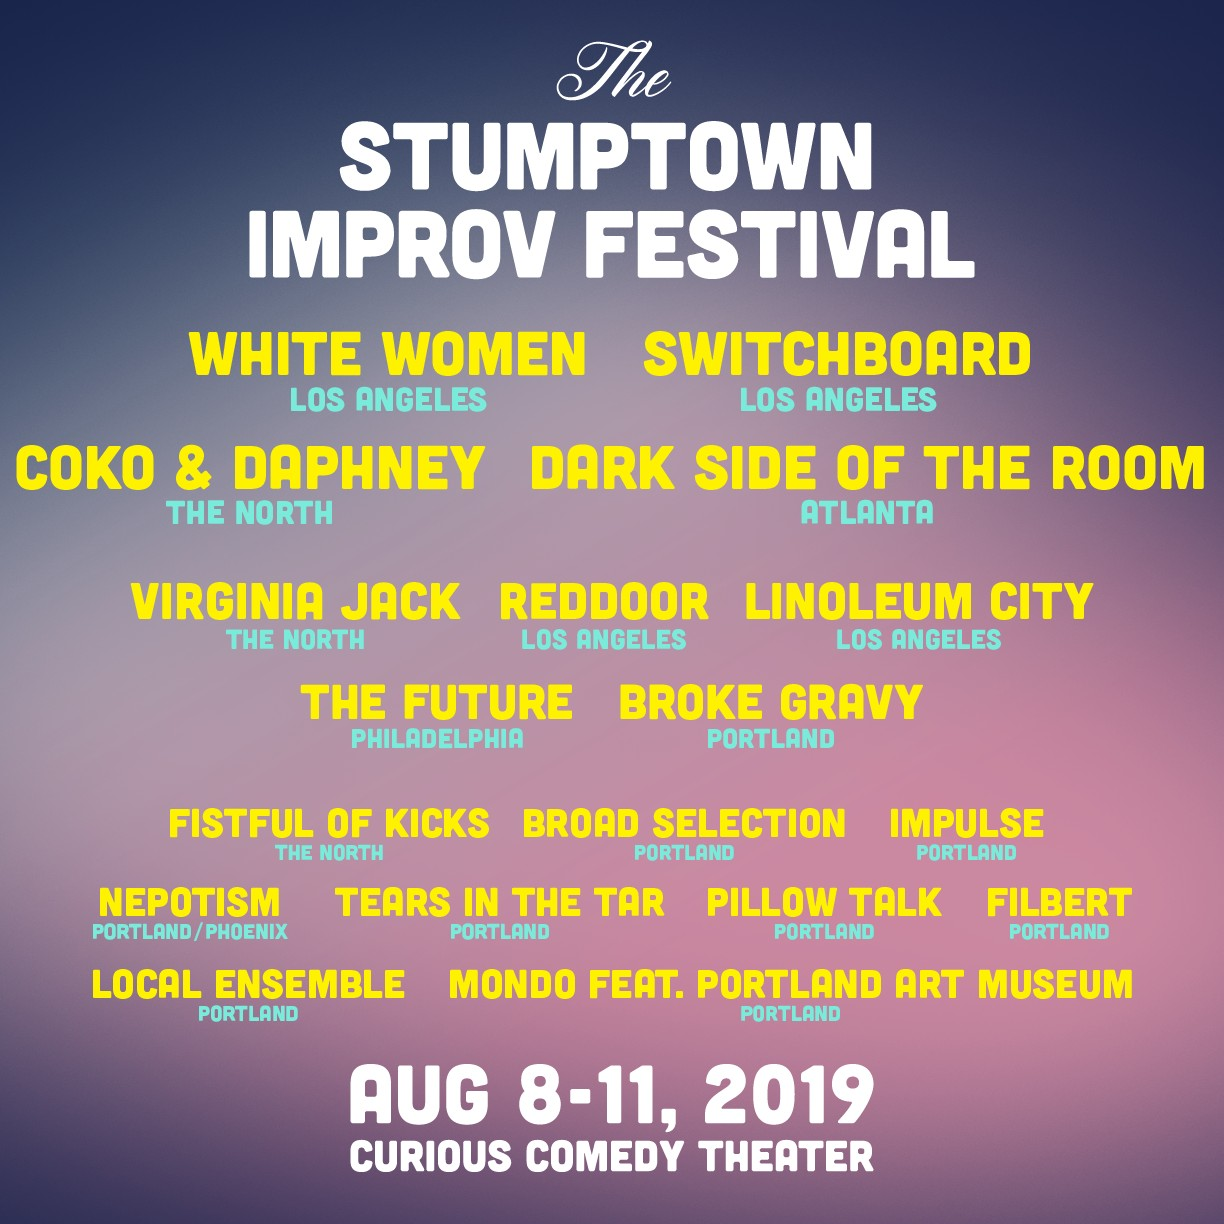 The 2019 Stumptown Improv Festival: Festival and Three-Show